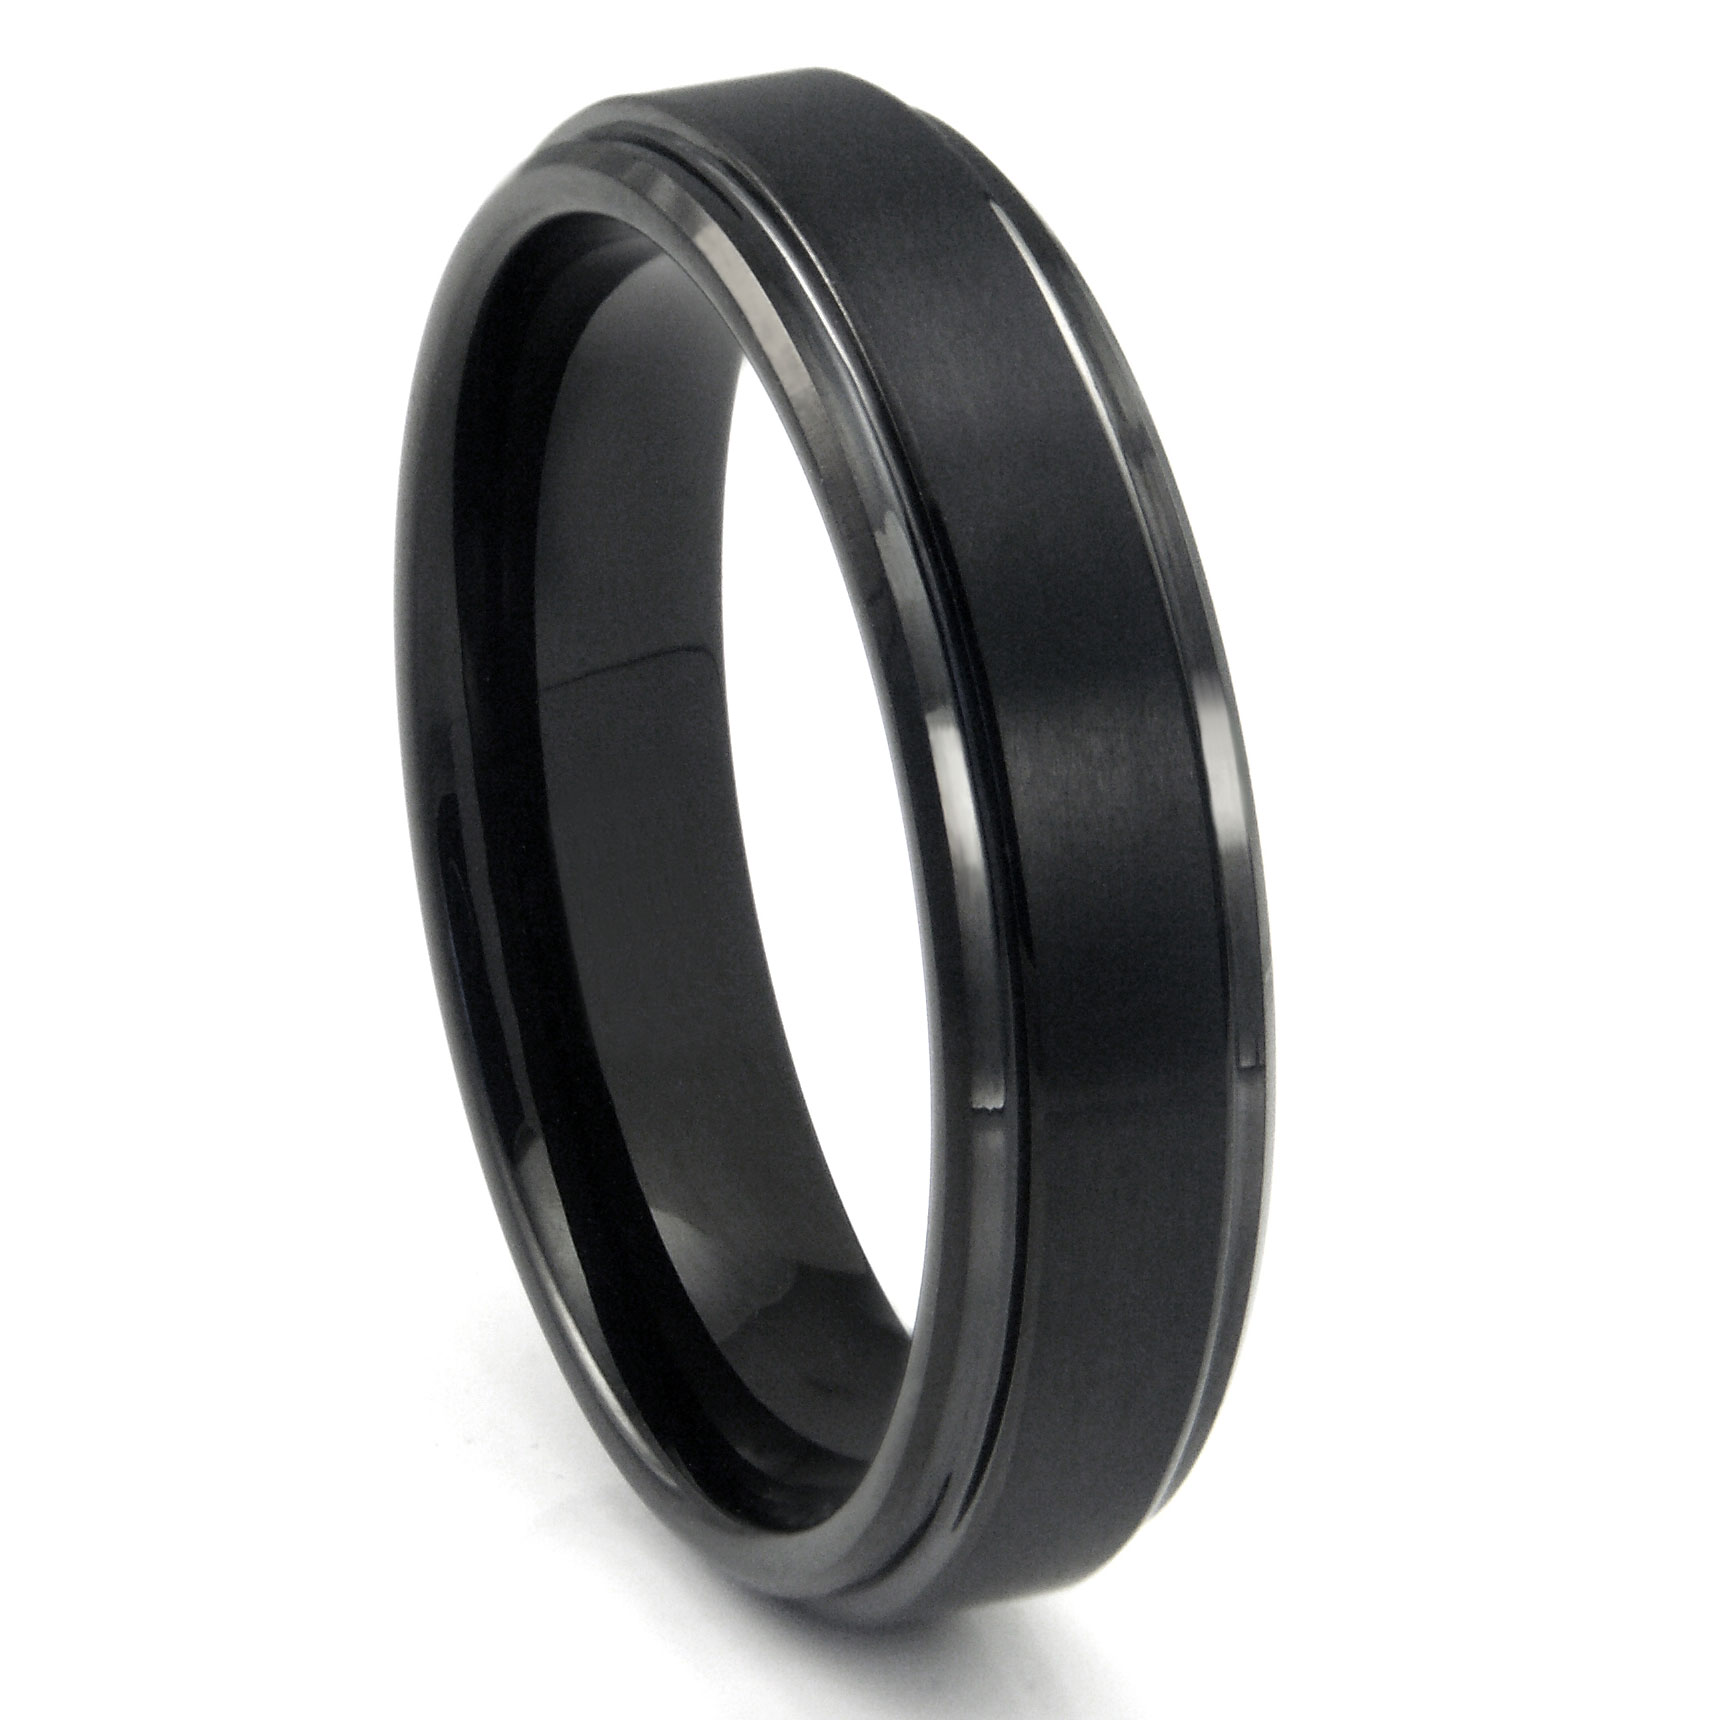 diamantissima silver rings sterling metallic jewelry gallery mens men ring gucci in product s normal wide lyst black